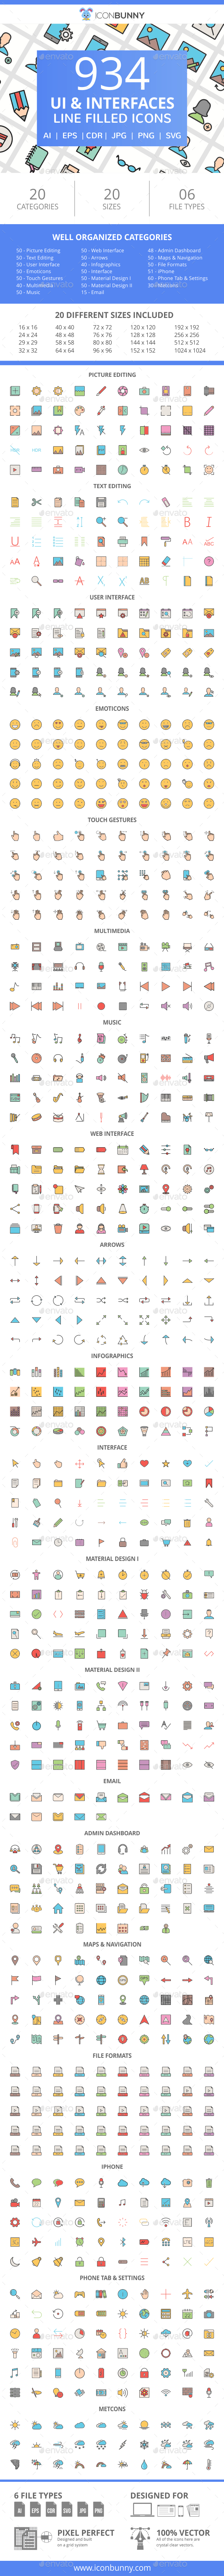 GraphicRiver 934 UI & Interfaces Filled Line Icons 21087079